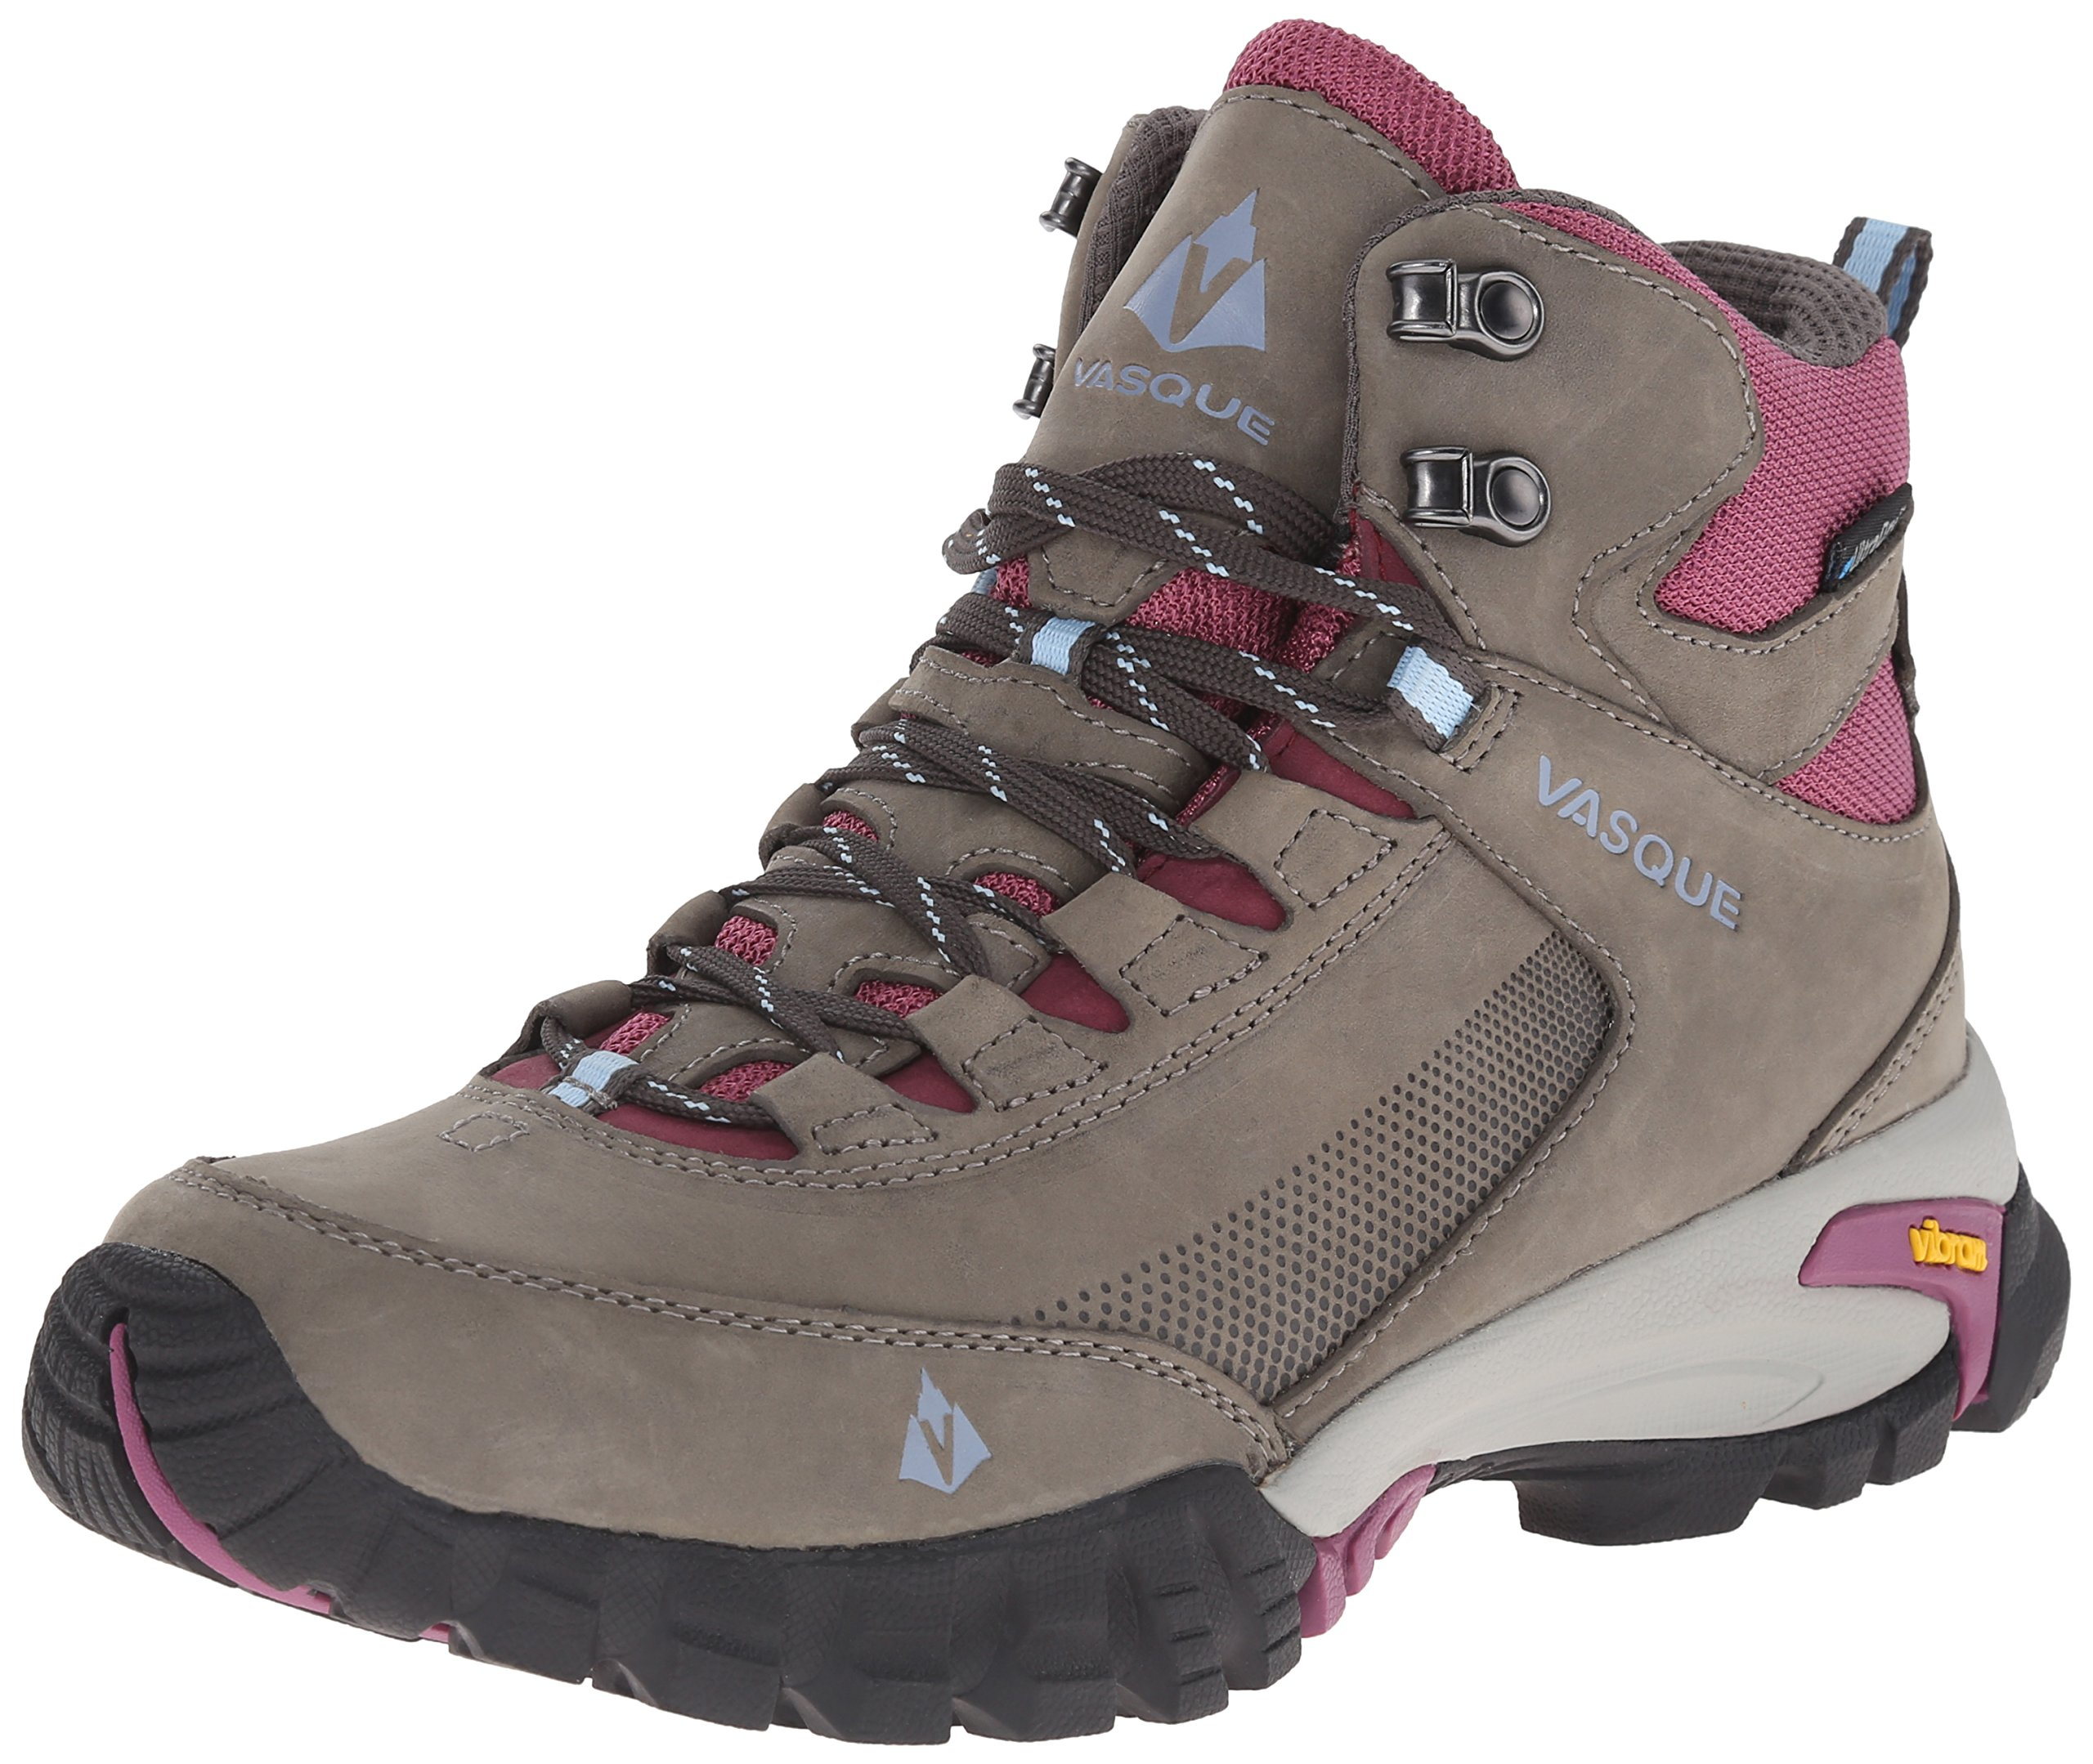 Vasque Women's Talus Trek UltraDry Hiking Boot, Gargoyle/Damson, 6 M US by Vasque